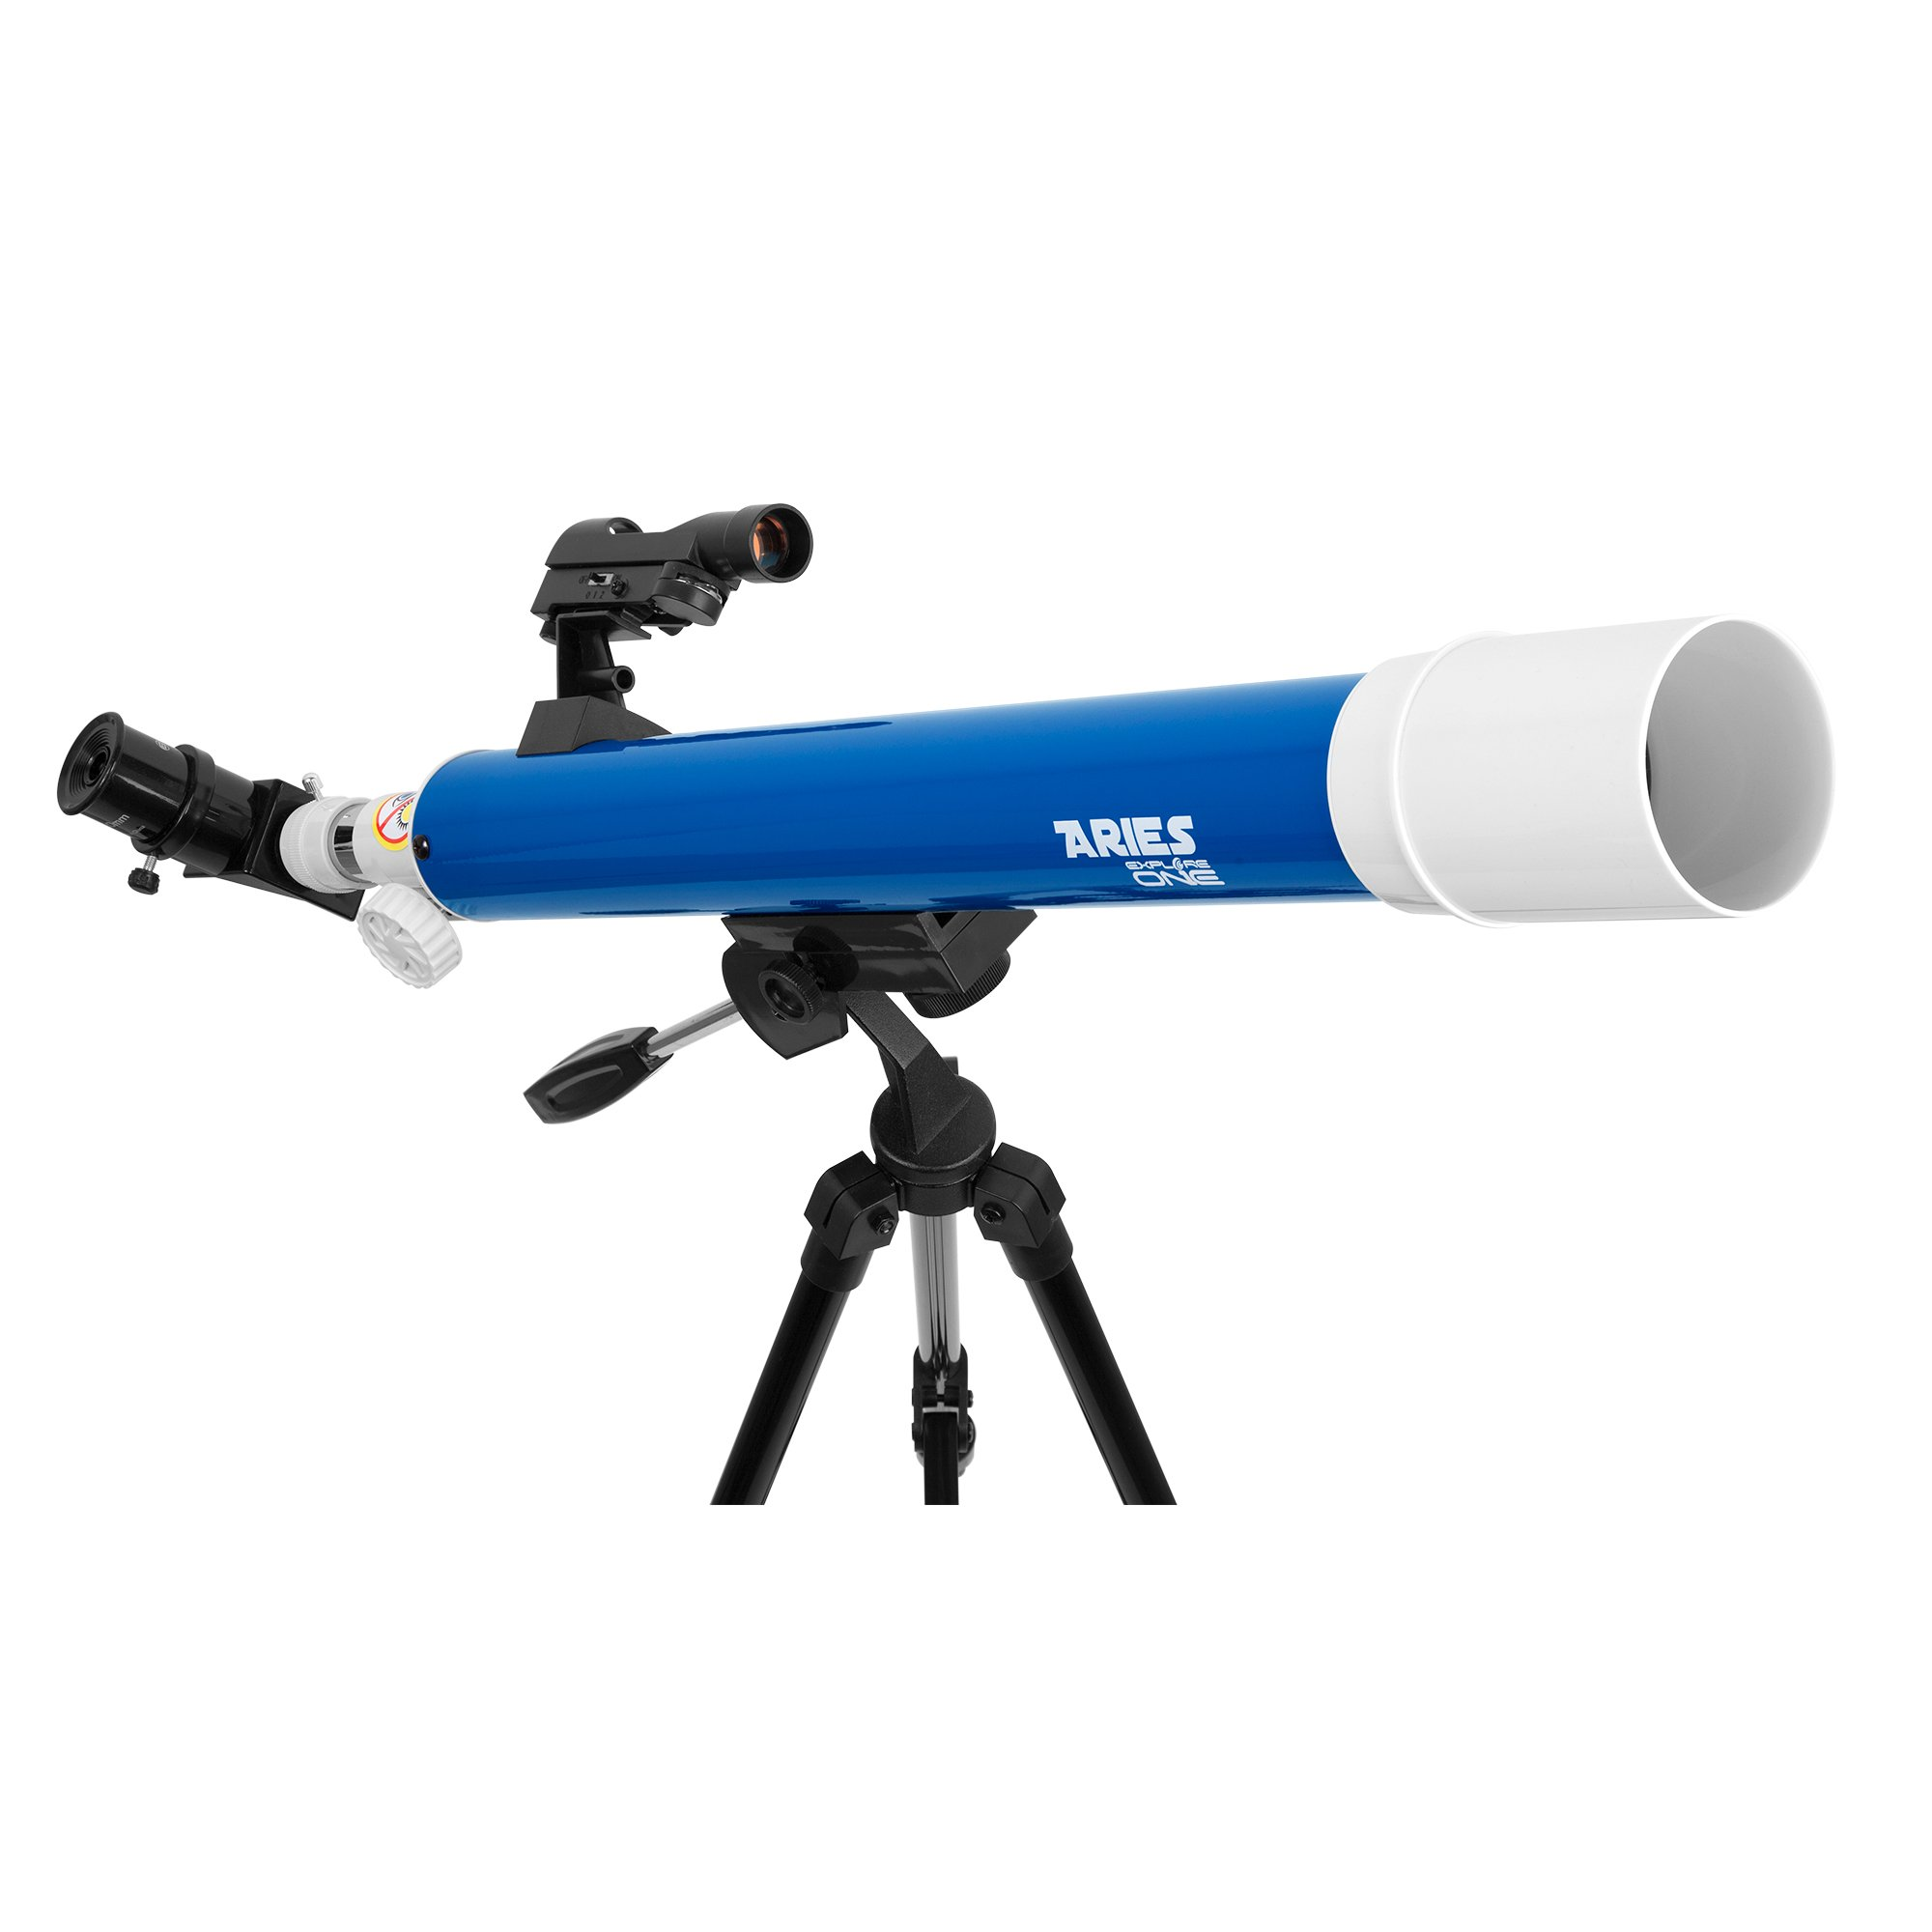 Explore One Aires 50MM Reflector Telescope by EXPLORE ONE